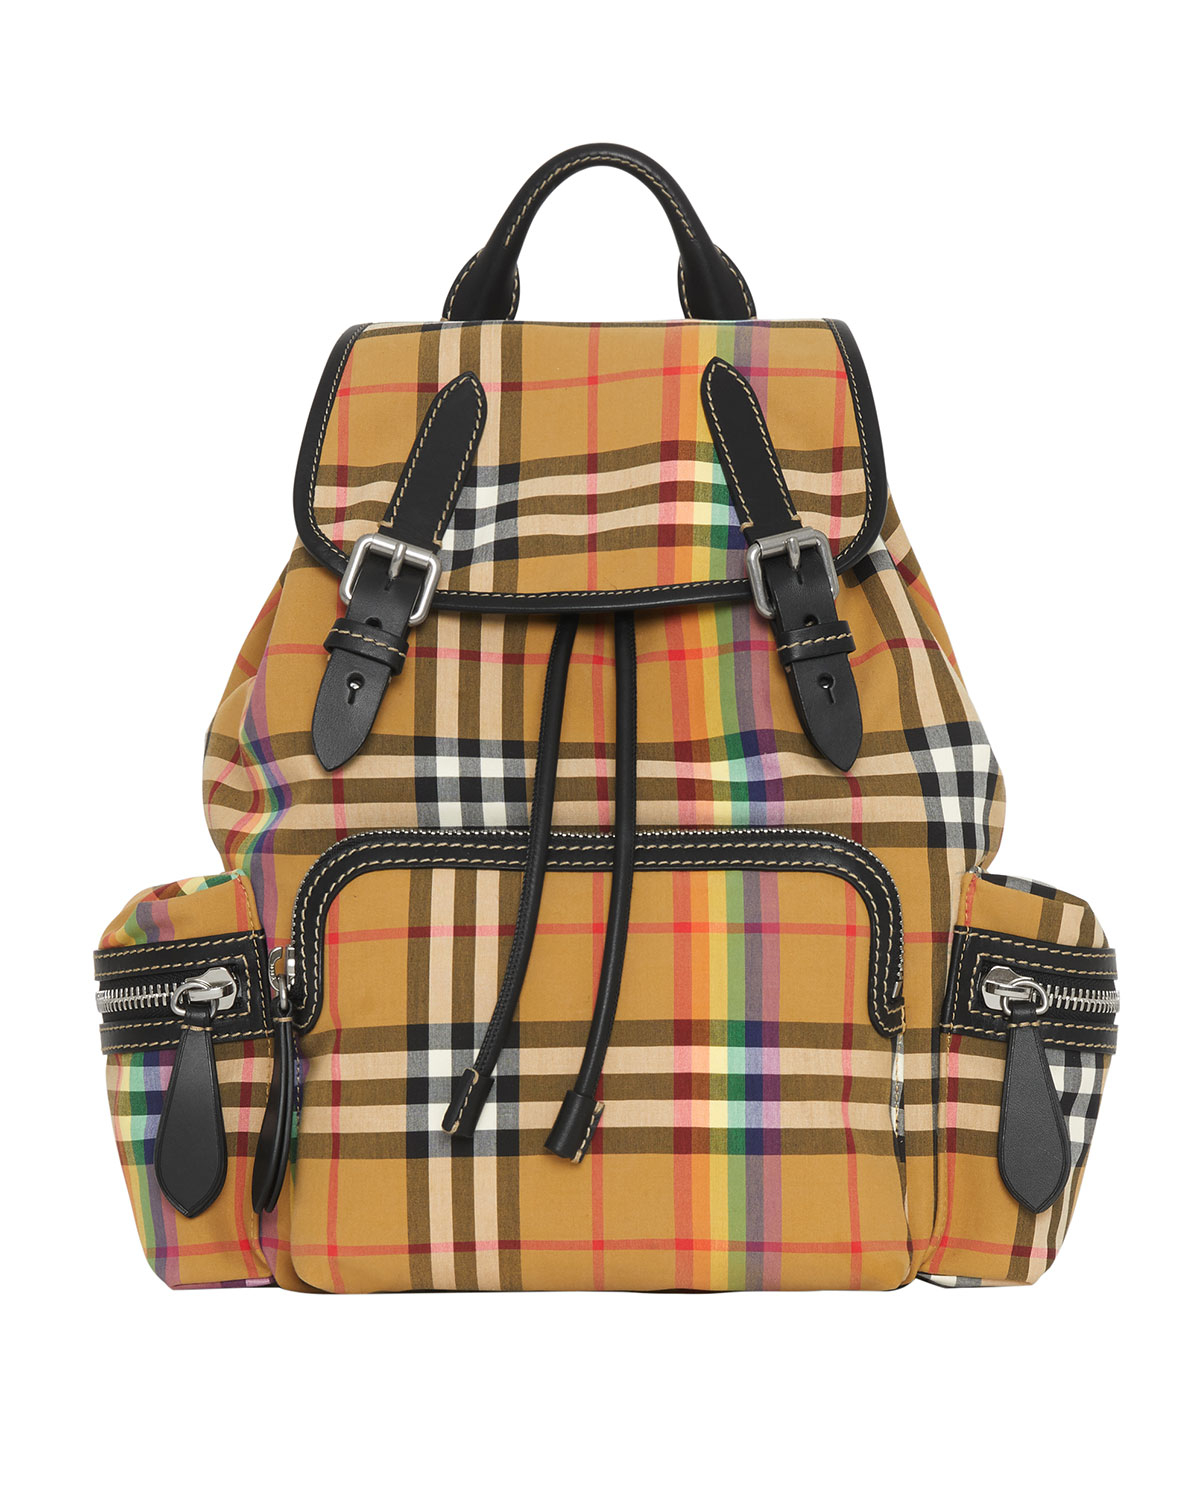 4894063bd53a3 Burberry Medium Rucksack Vintage Check Rainbow Backpack